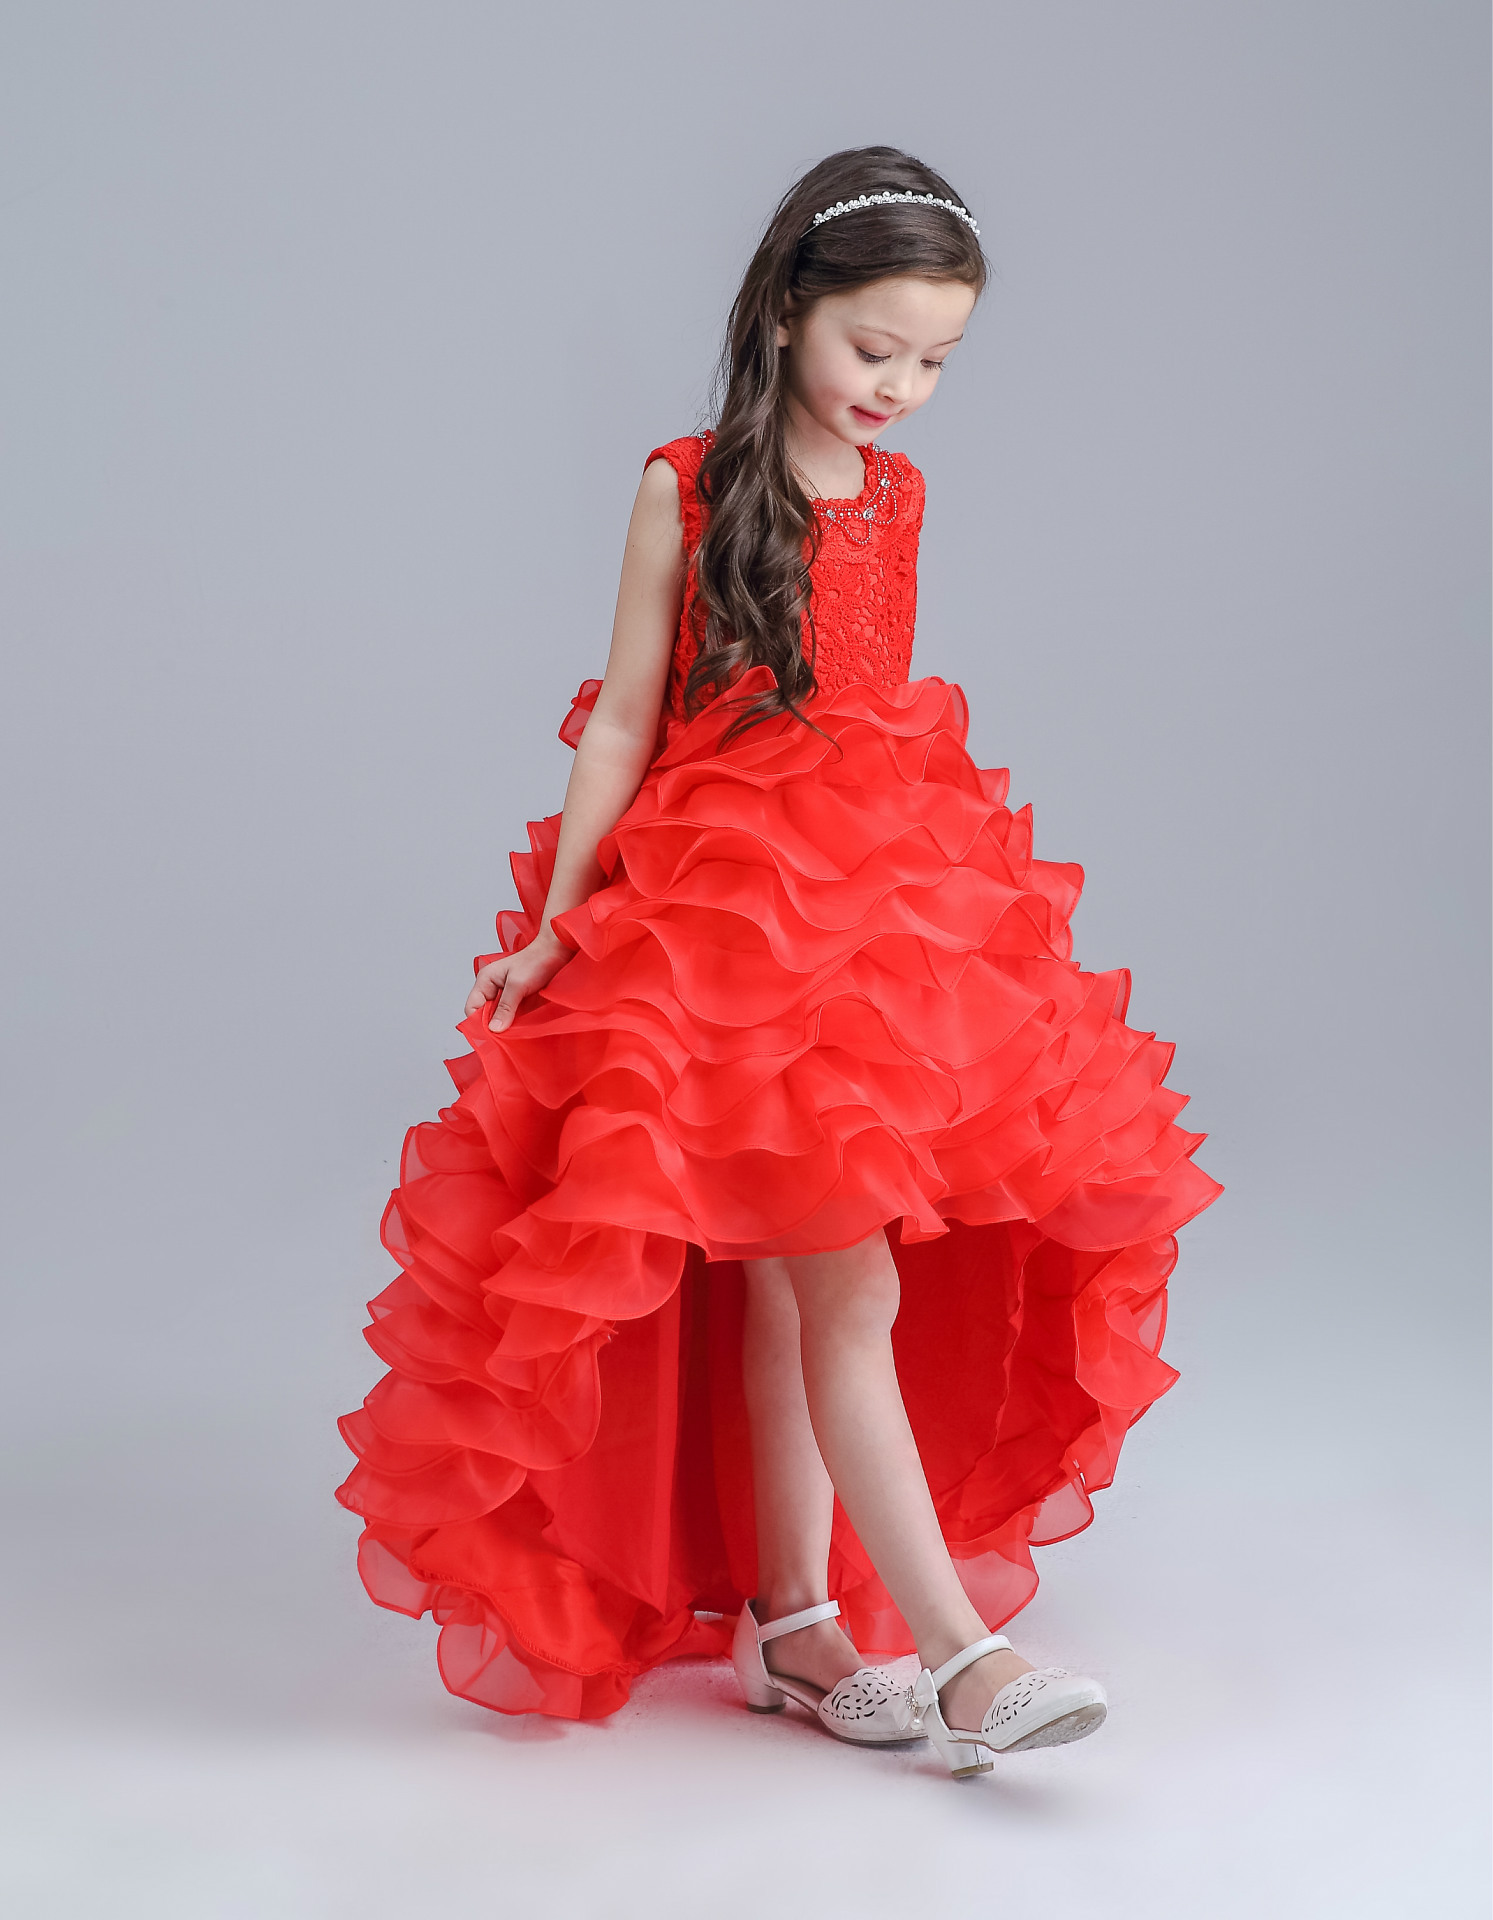 New Red Tailed Girls Dress Princess Wedding Party Flower Children Bridesmaid Vestidos Ropa Infantil Girl 2016 Kids Clothes 4-15Y 2017 new flower girls elegant sequined long mesh wedding birthday party dresses baby kids children vestidos infantil clothes